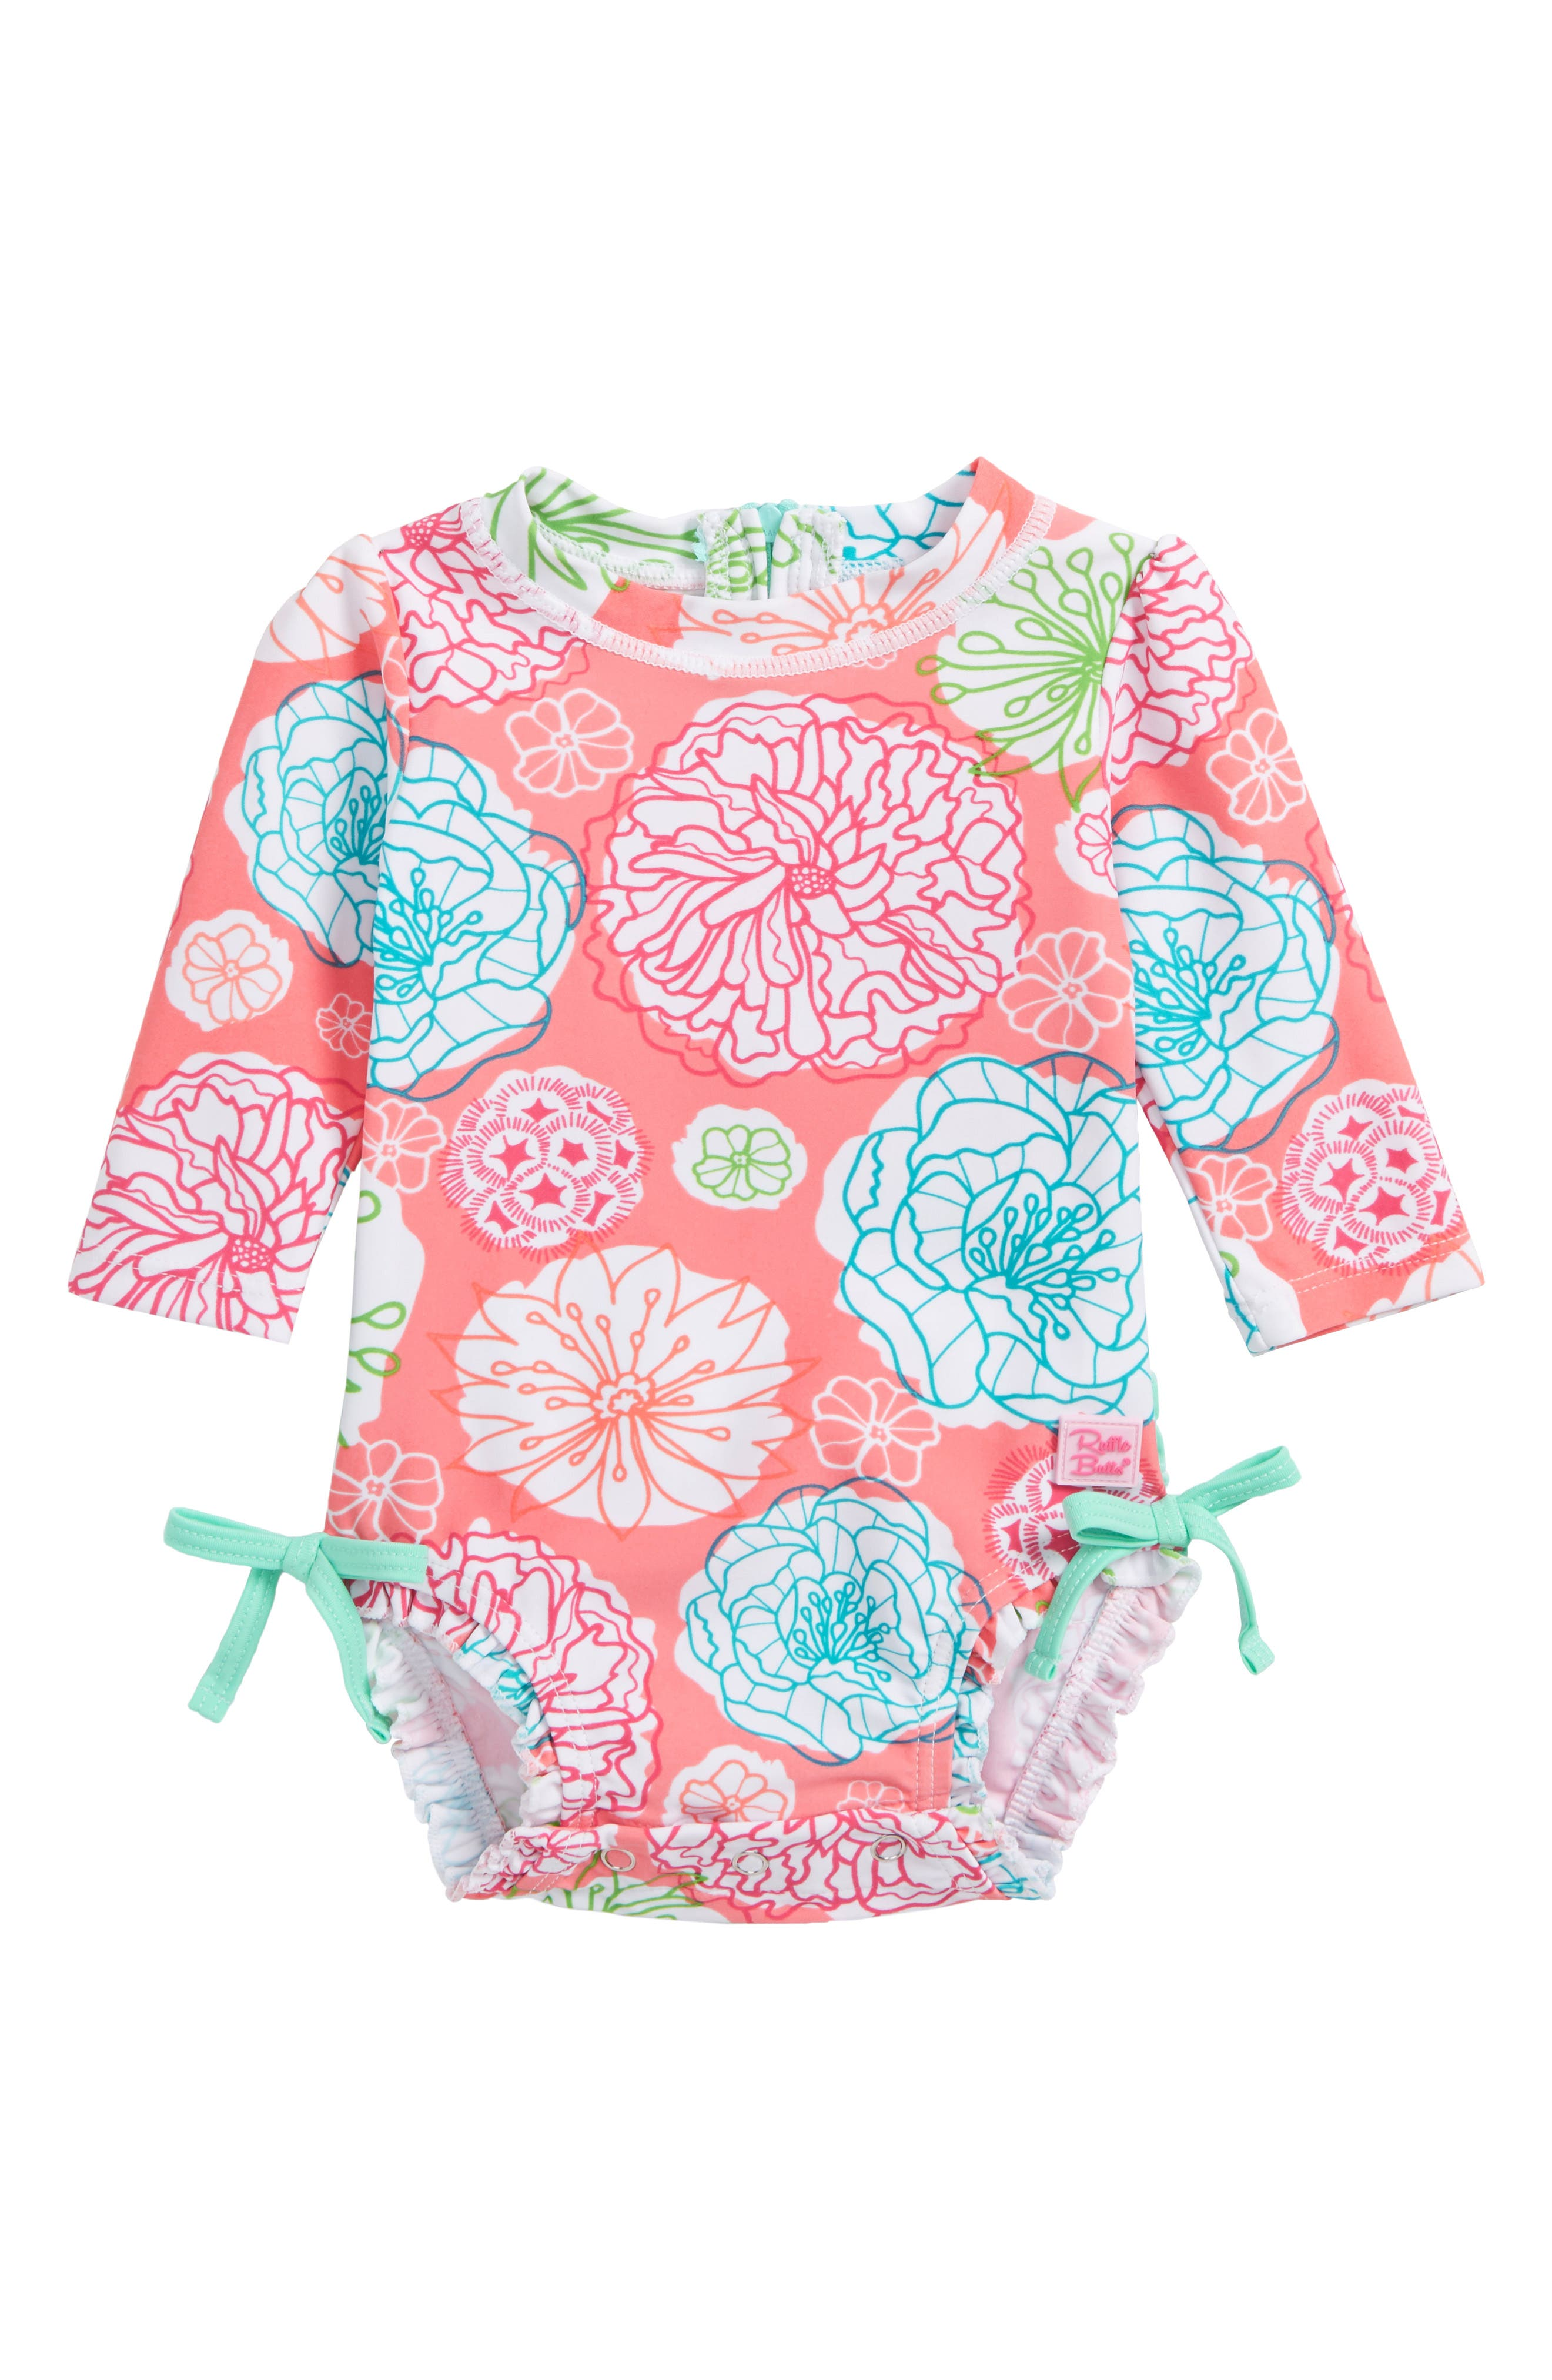 Tropical Garden One-Piece Rashguard,                             Main thumbnail 1, color,                             650